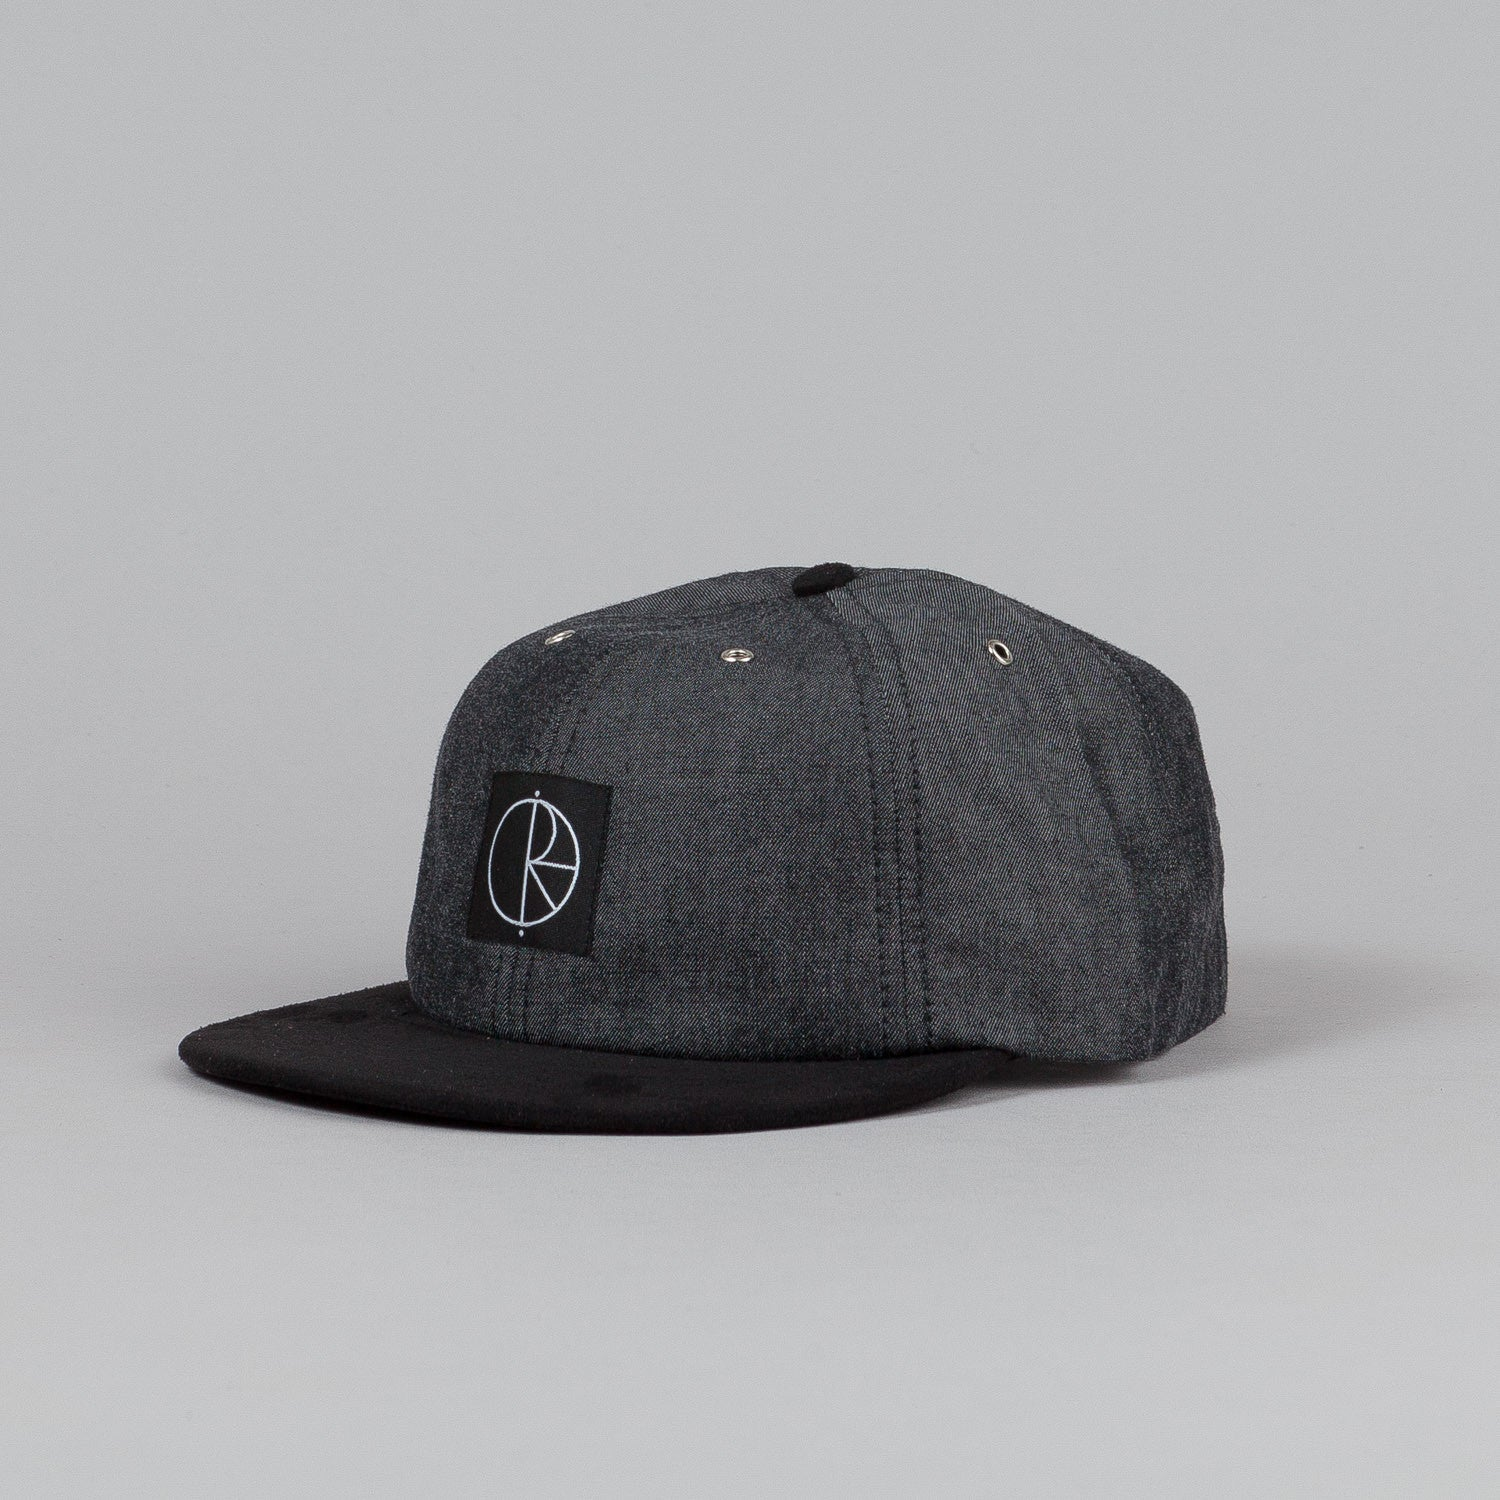 Polar Denim Cap Black Denim / Black Suede / Black Leather